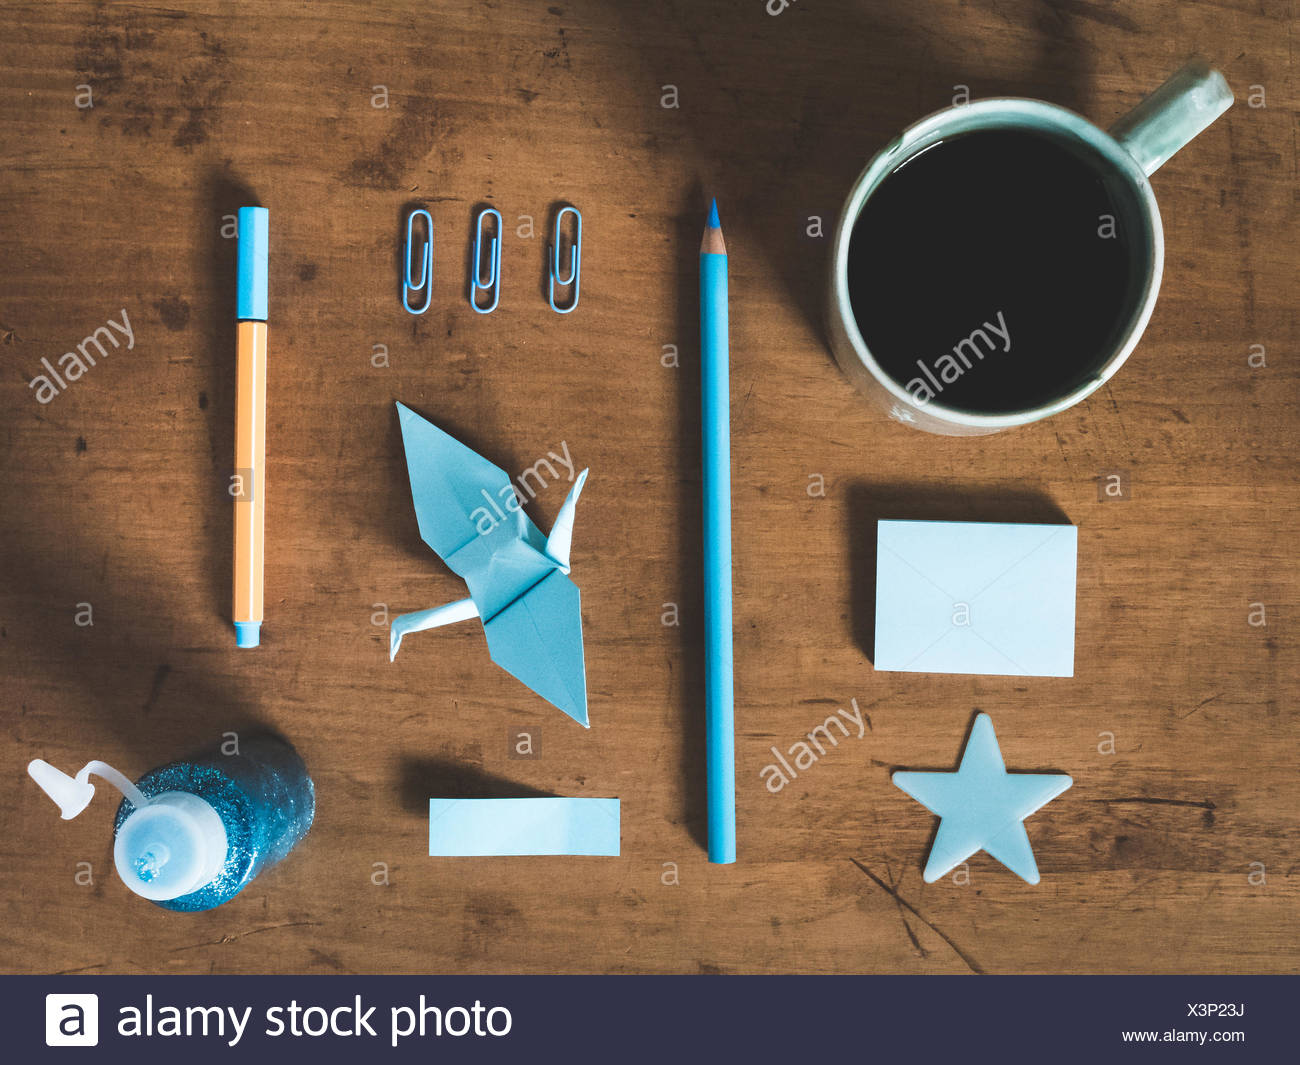 Directly Above Shot Of Equipments And Coffee Cup On Table - Stock Image